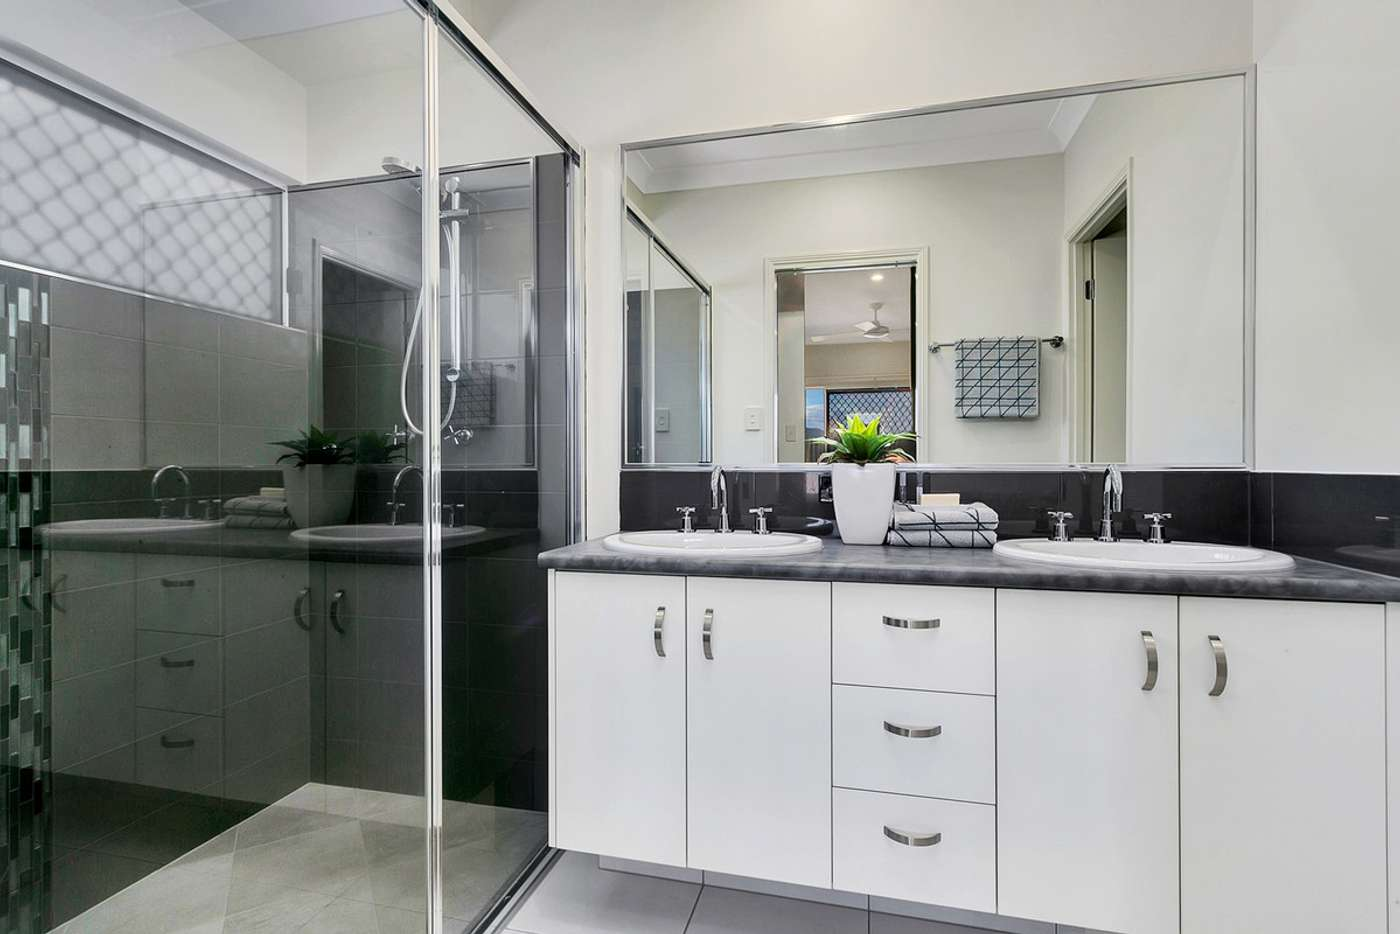 Fifth view of Homely house listing, 6 Munburra Parade, Smithfield QLD 4878